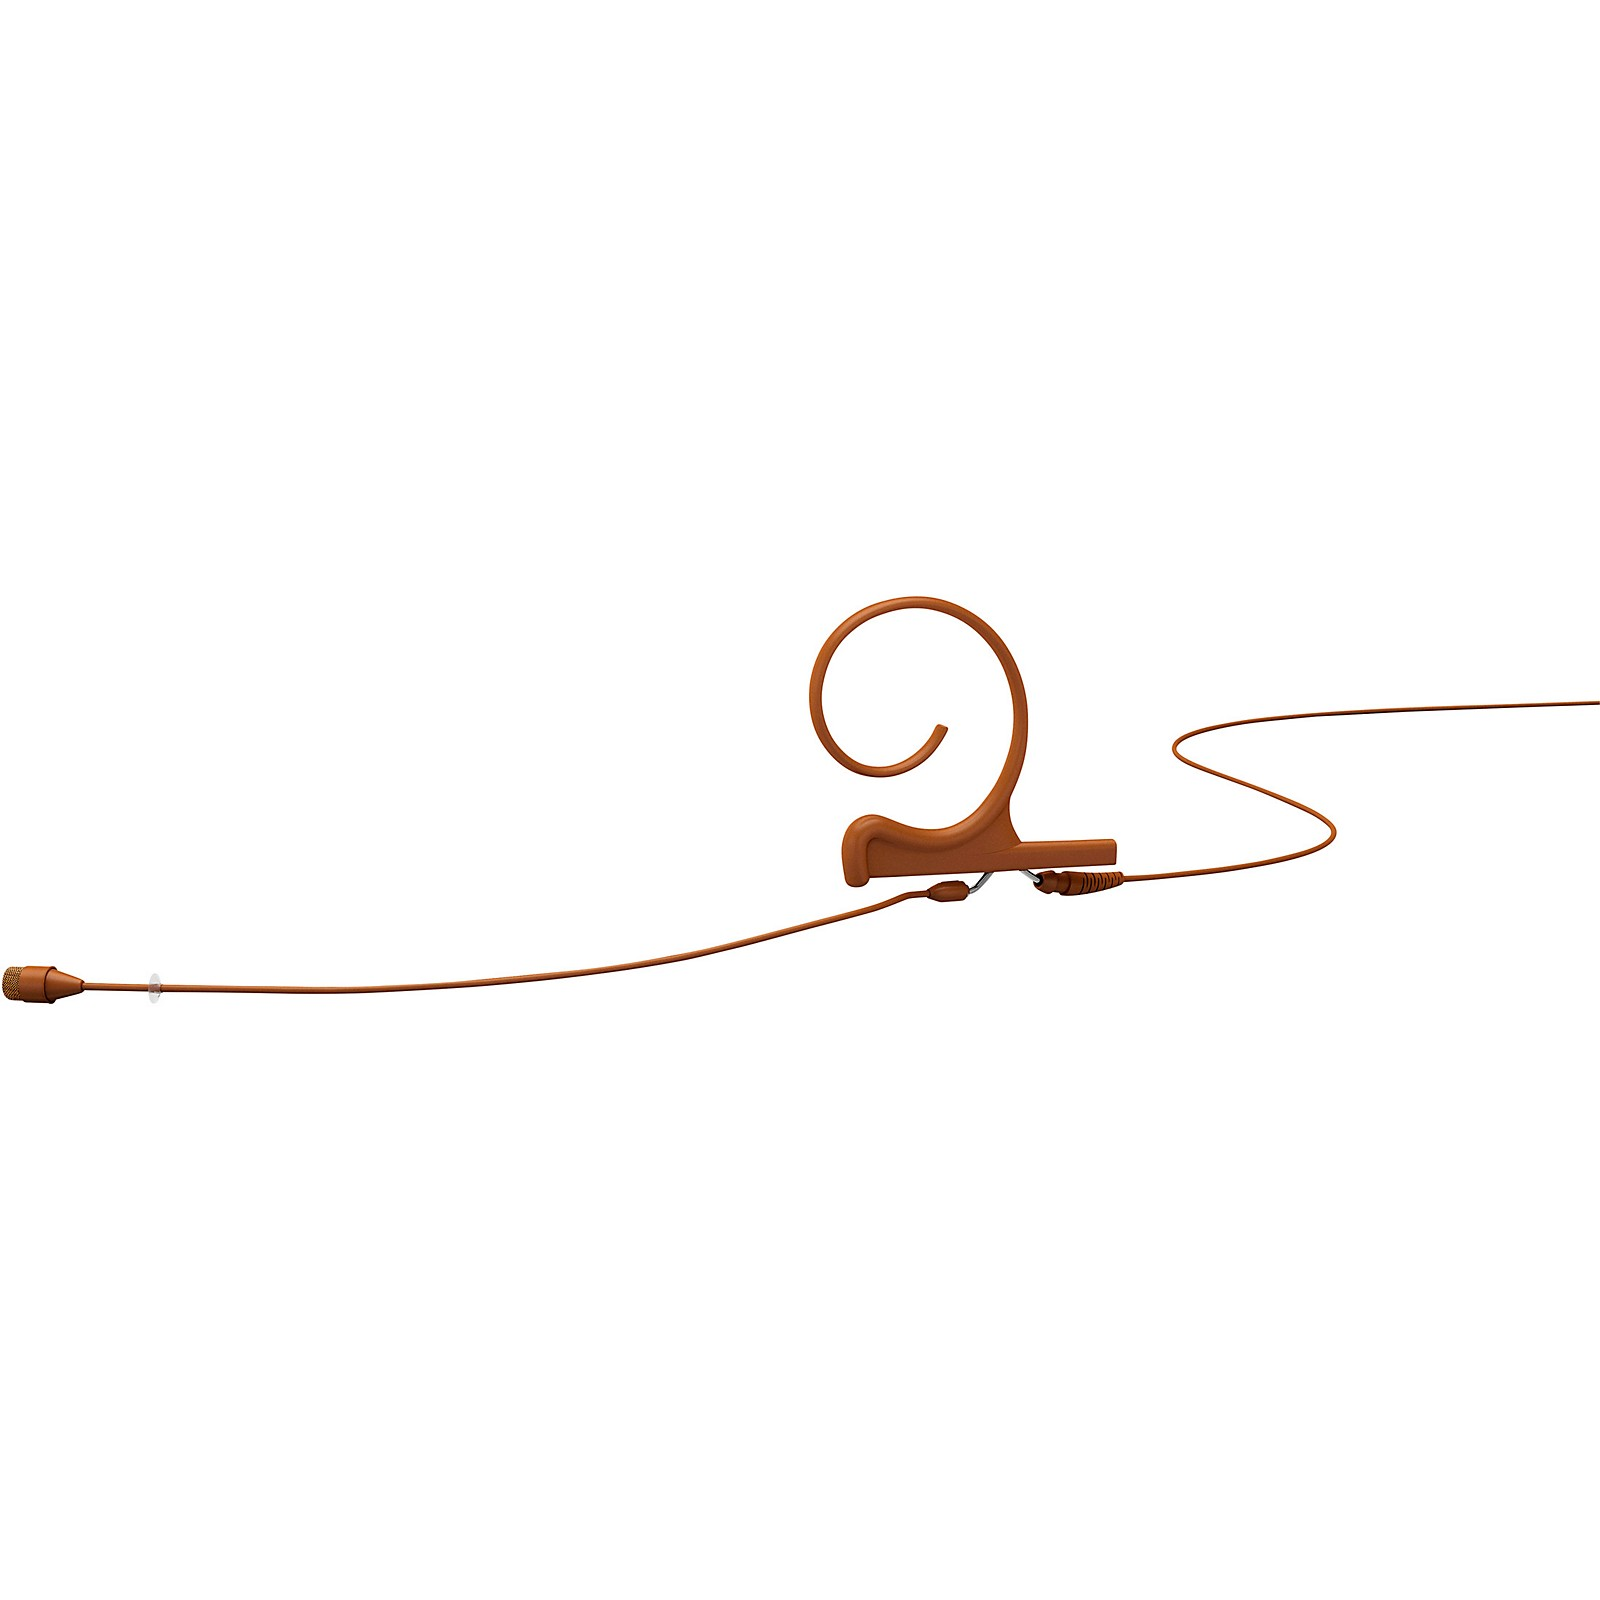 DPA Microphones d:fine FIO66 Omnidirectional Headset Microphone—Single Ear, 90mm Boom, Brown